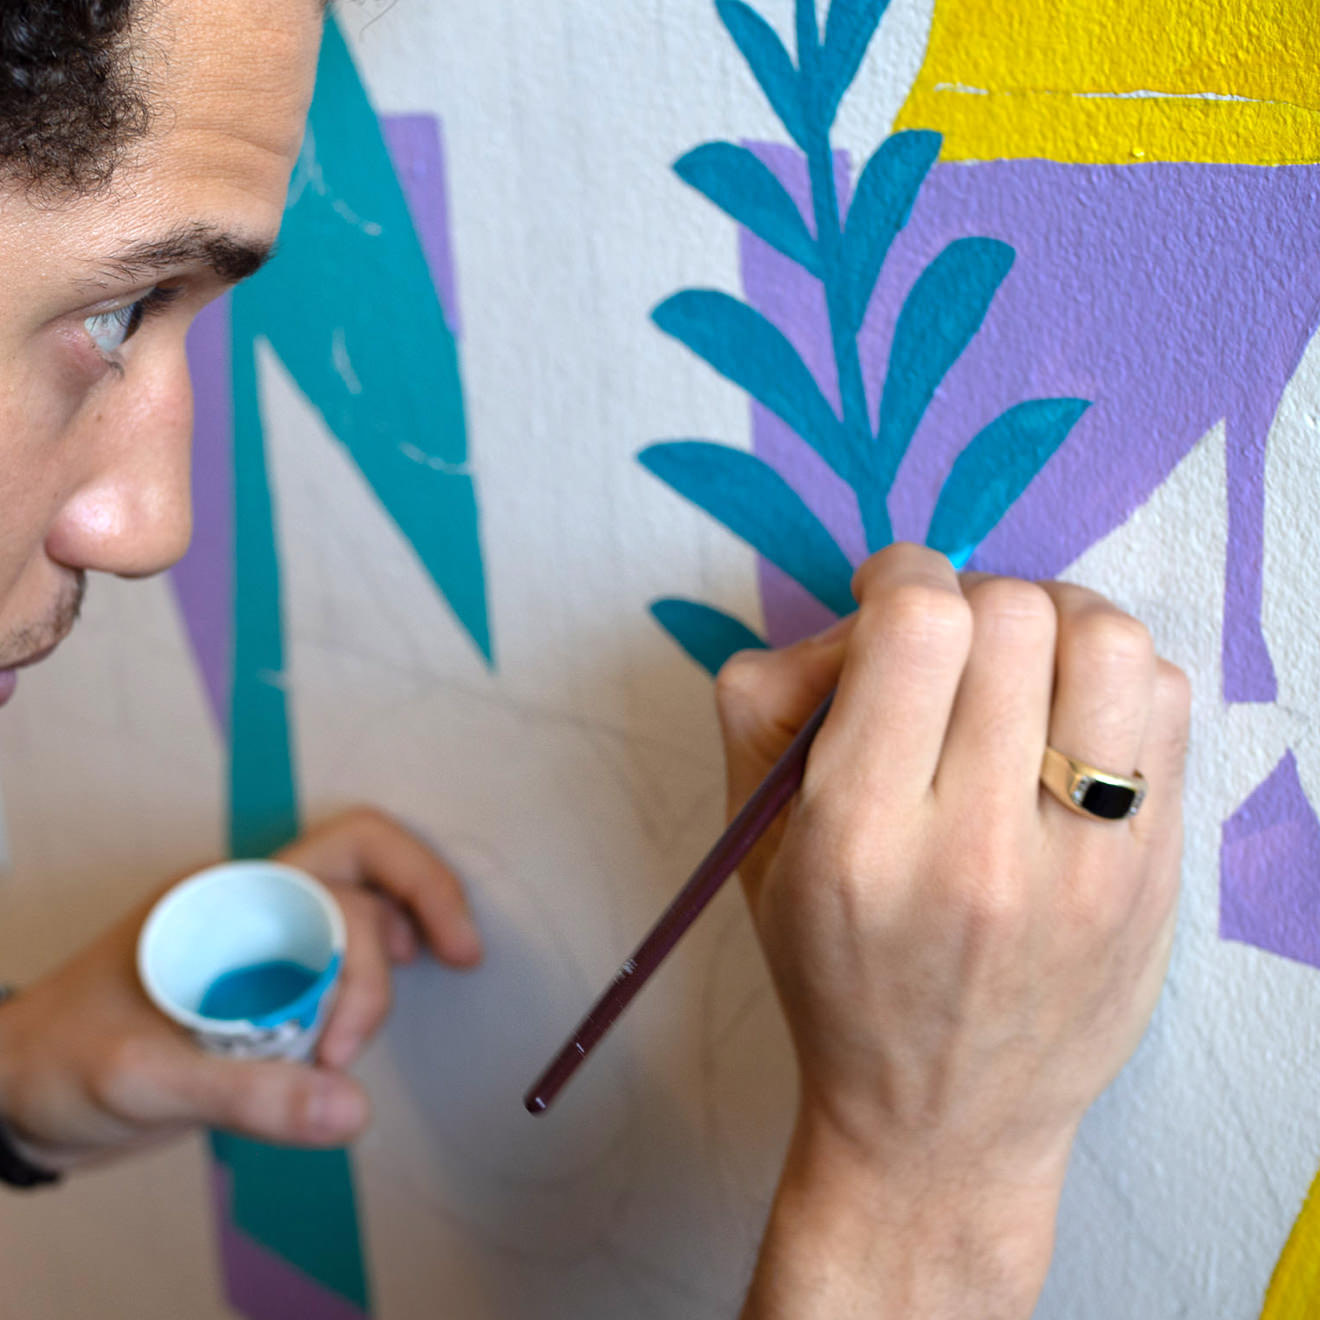 Man painting blue leaves onto a wall mural